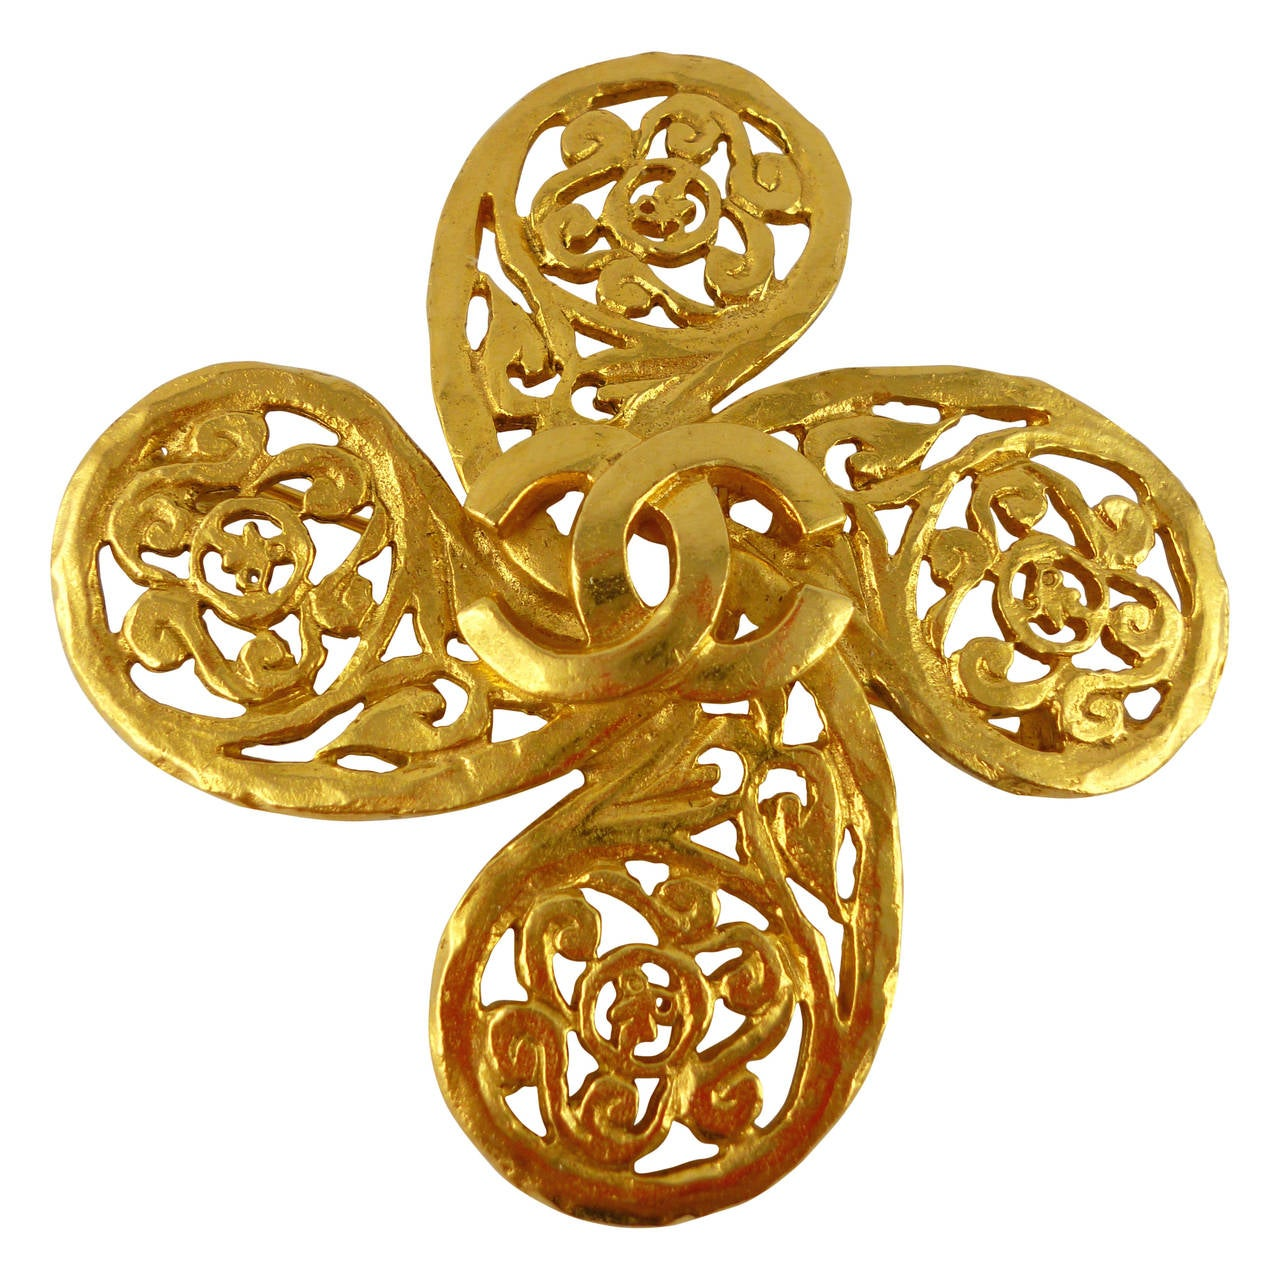 Chanel Vintage Fall/Winter 1993 Gold Tone Openwork Clover Brooch 1